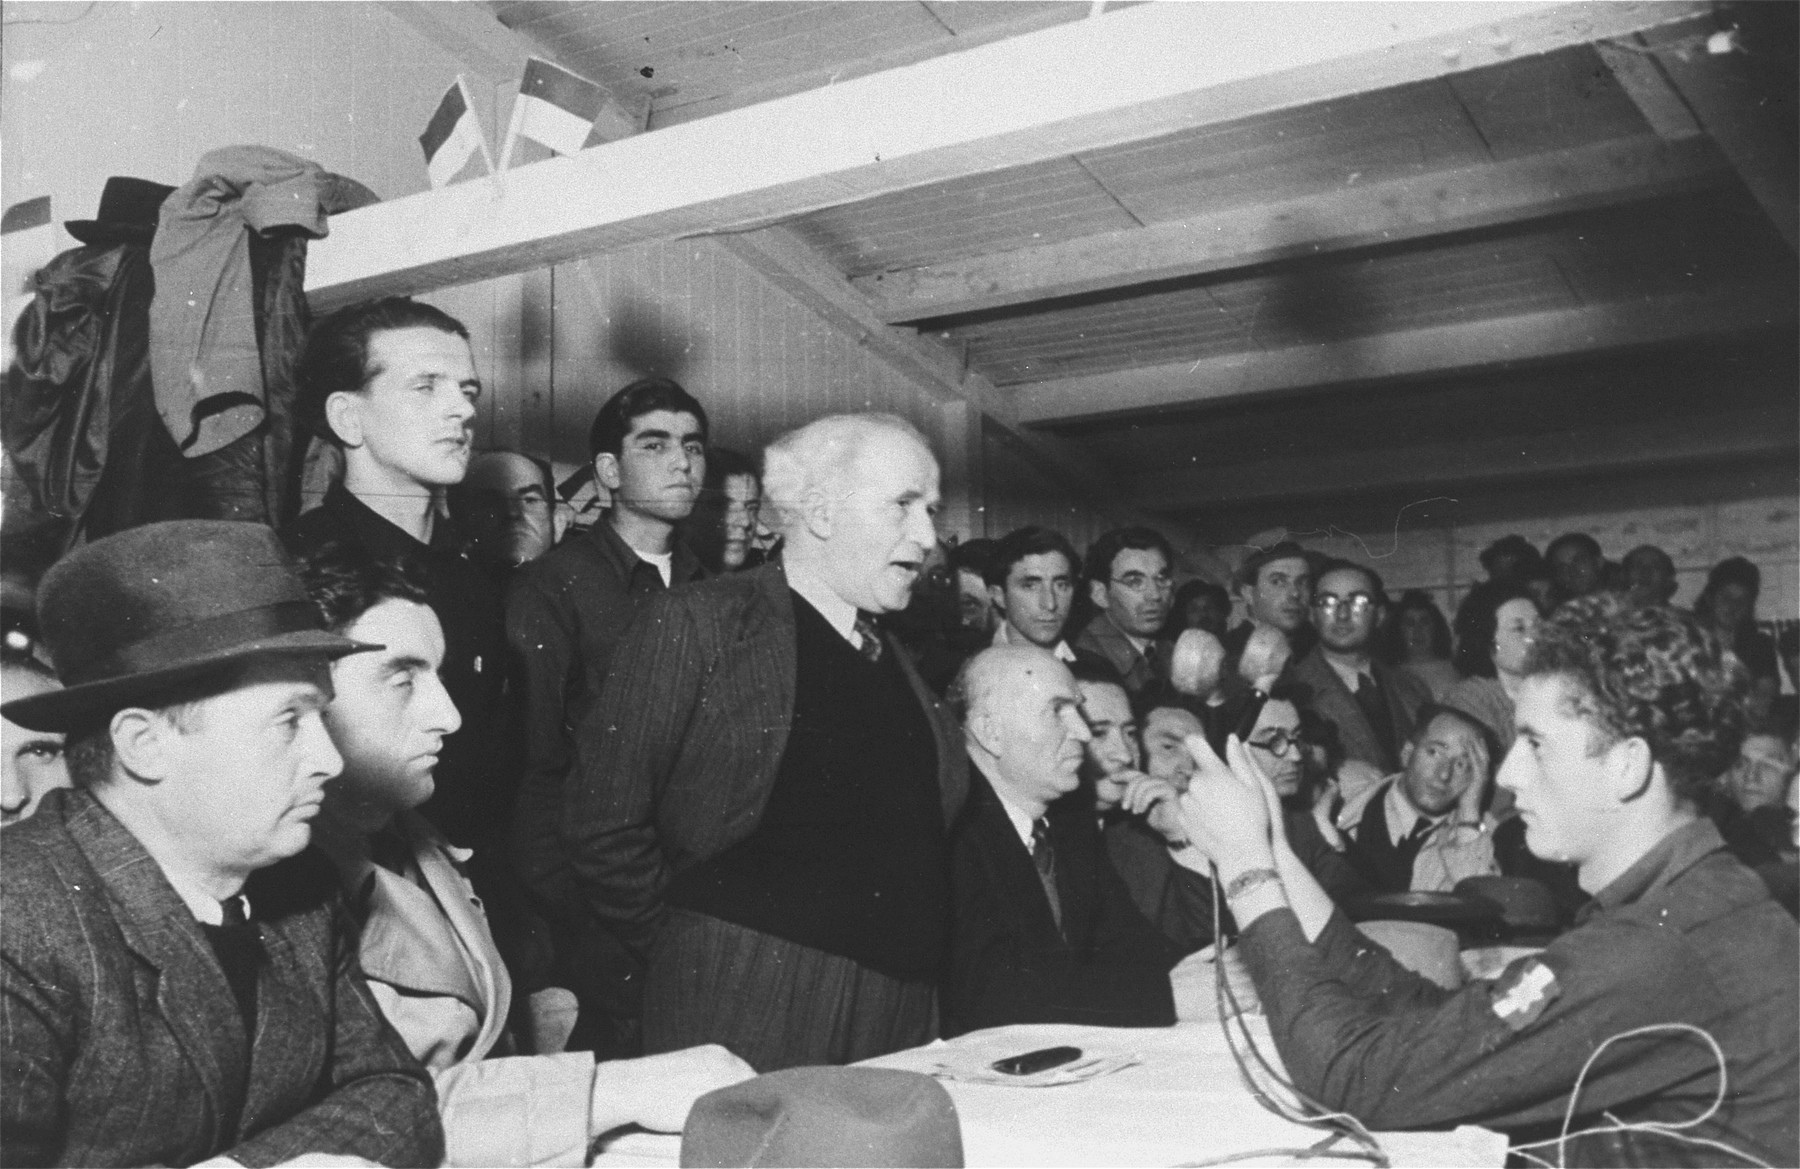 David Ben-Gurion, Chairman of the Jewish Agency Executive, delivers a speech at a public forum during an official visit to the Zeilsheim displaced persons camp.